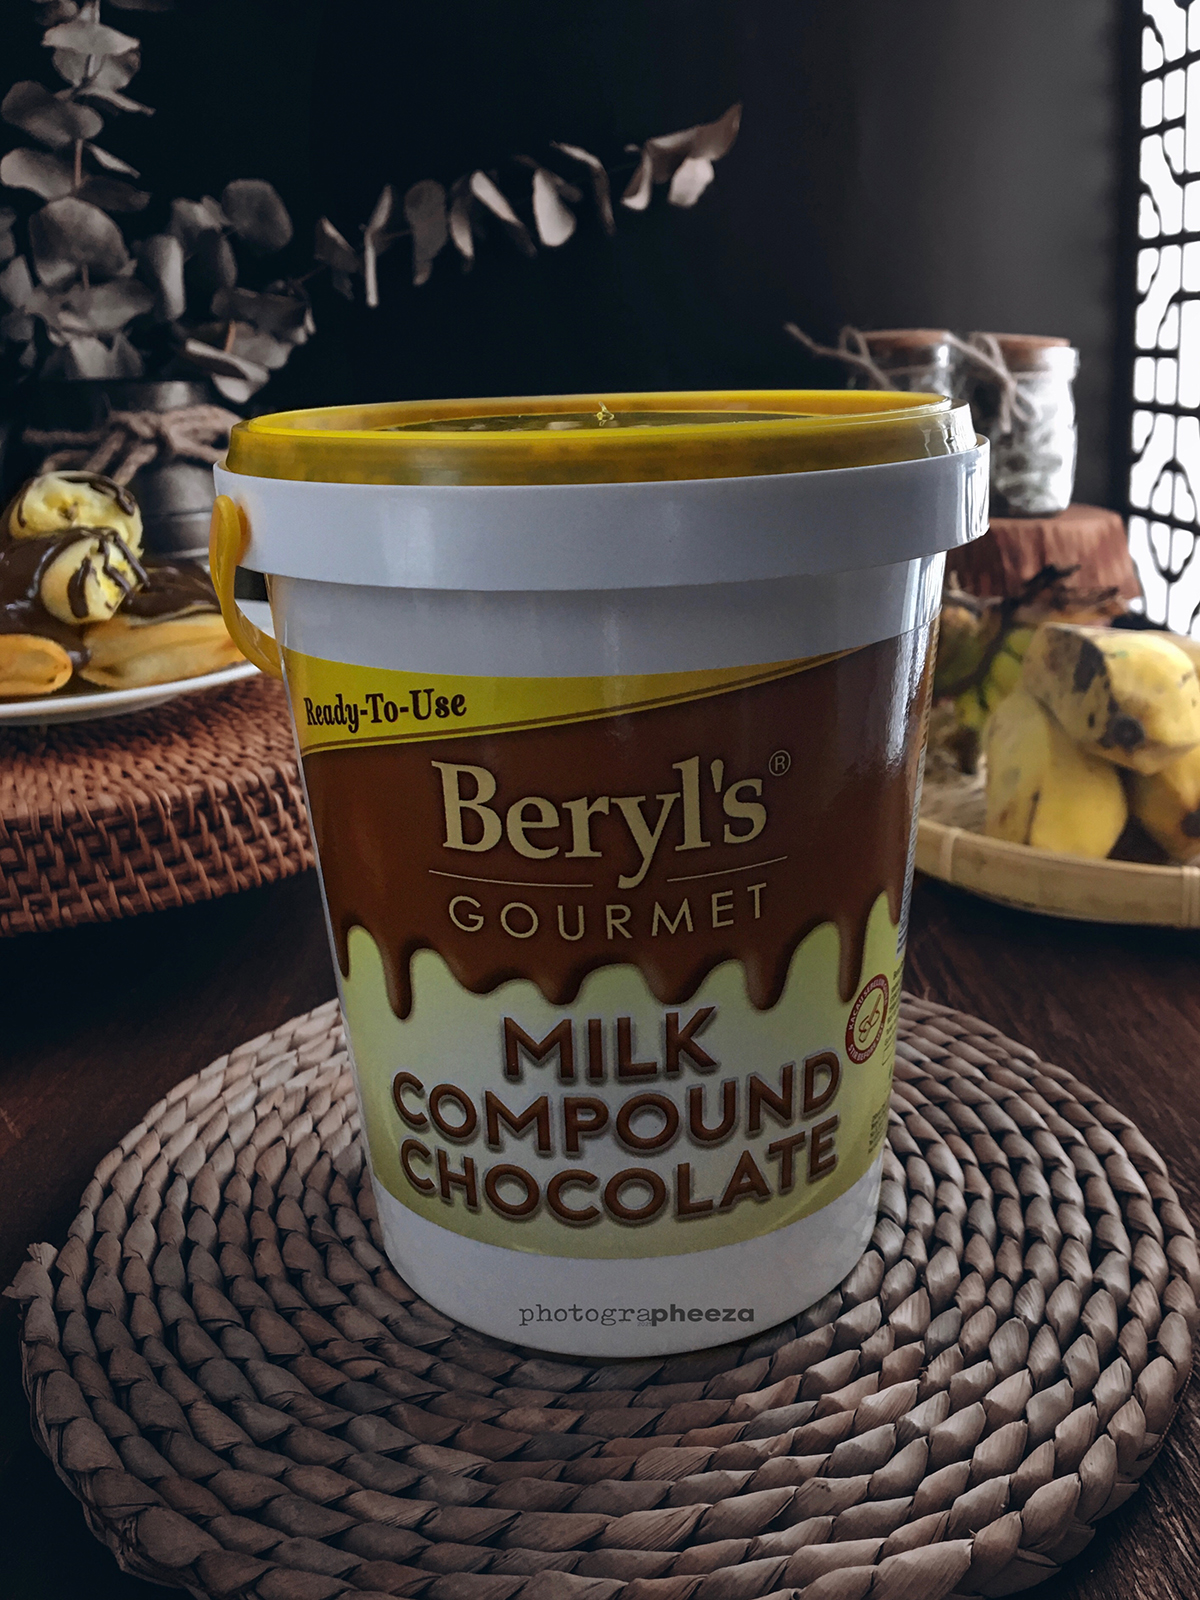 Beryl's Gourmet Milk Compound Chocolate